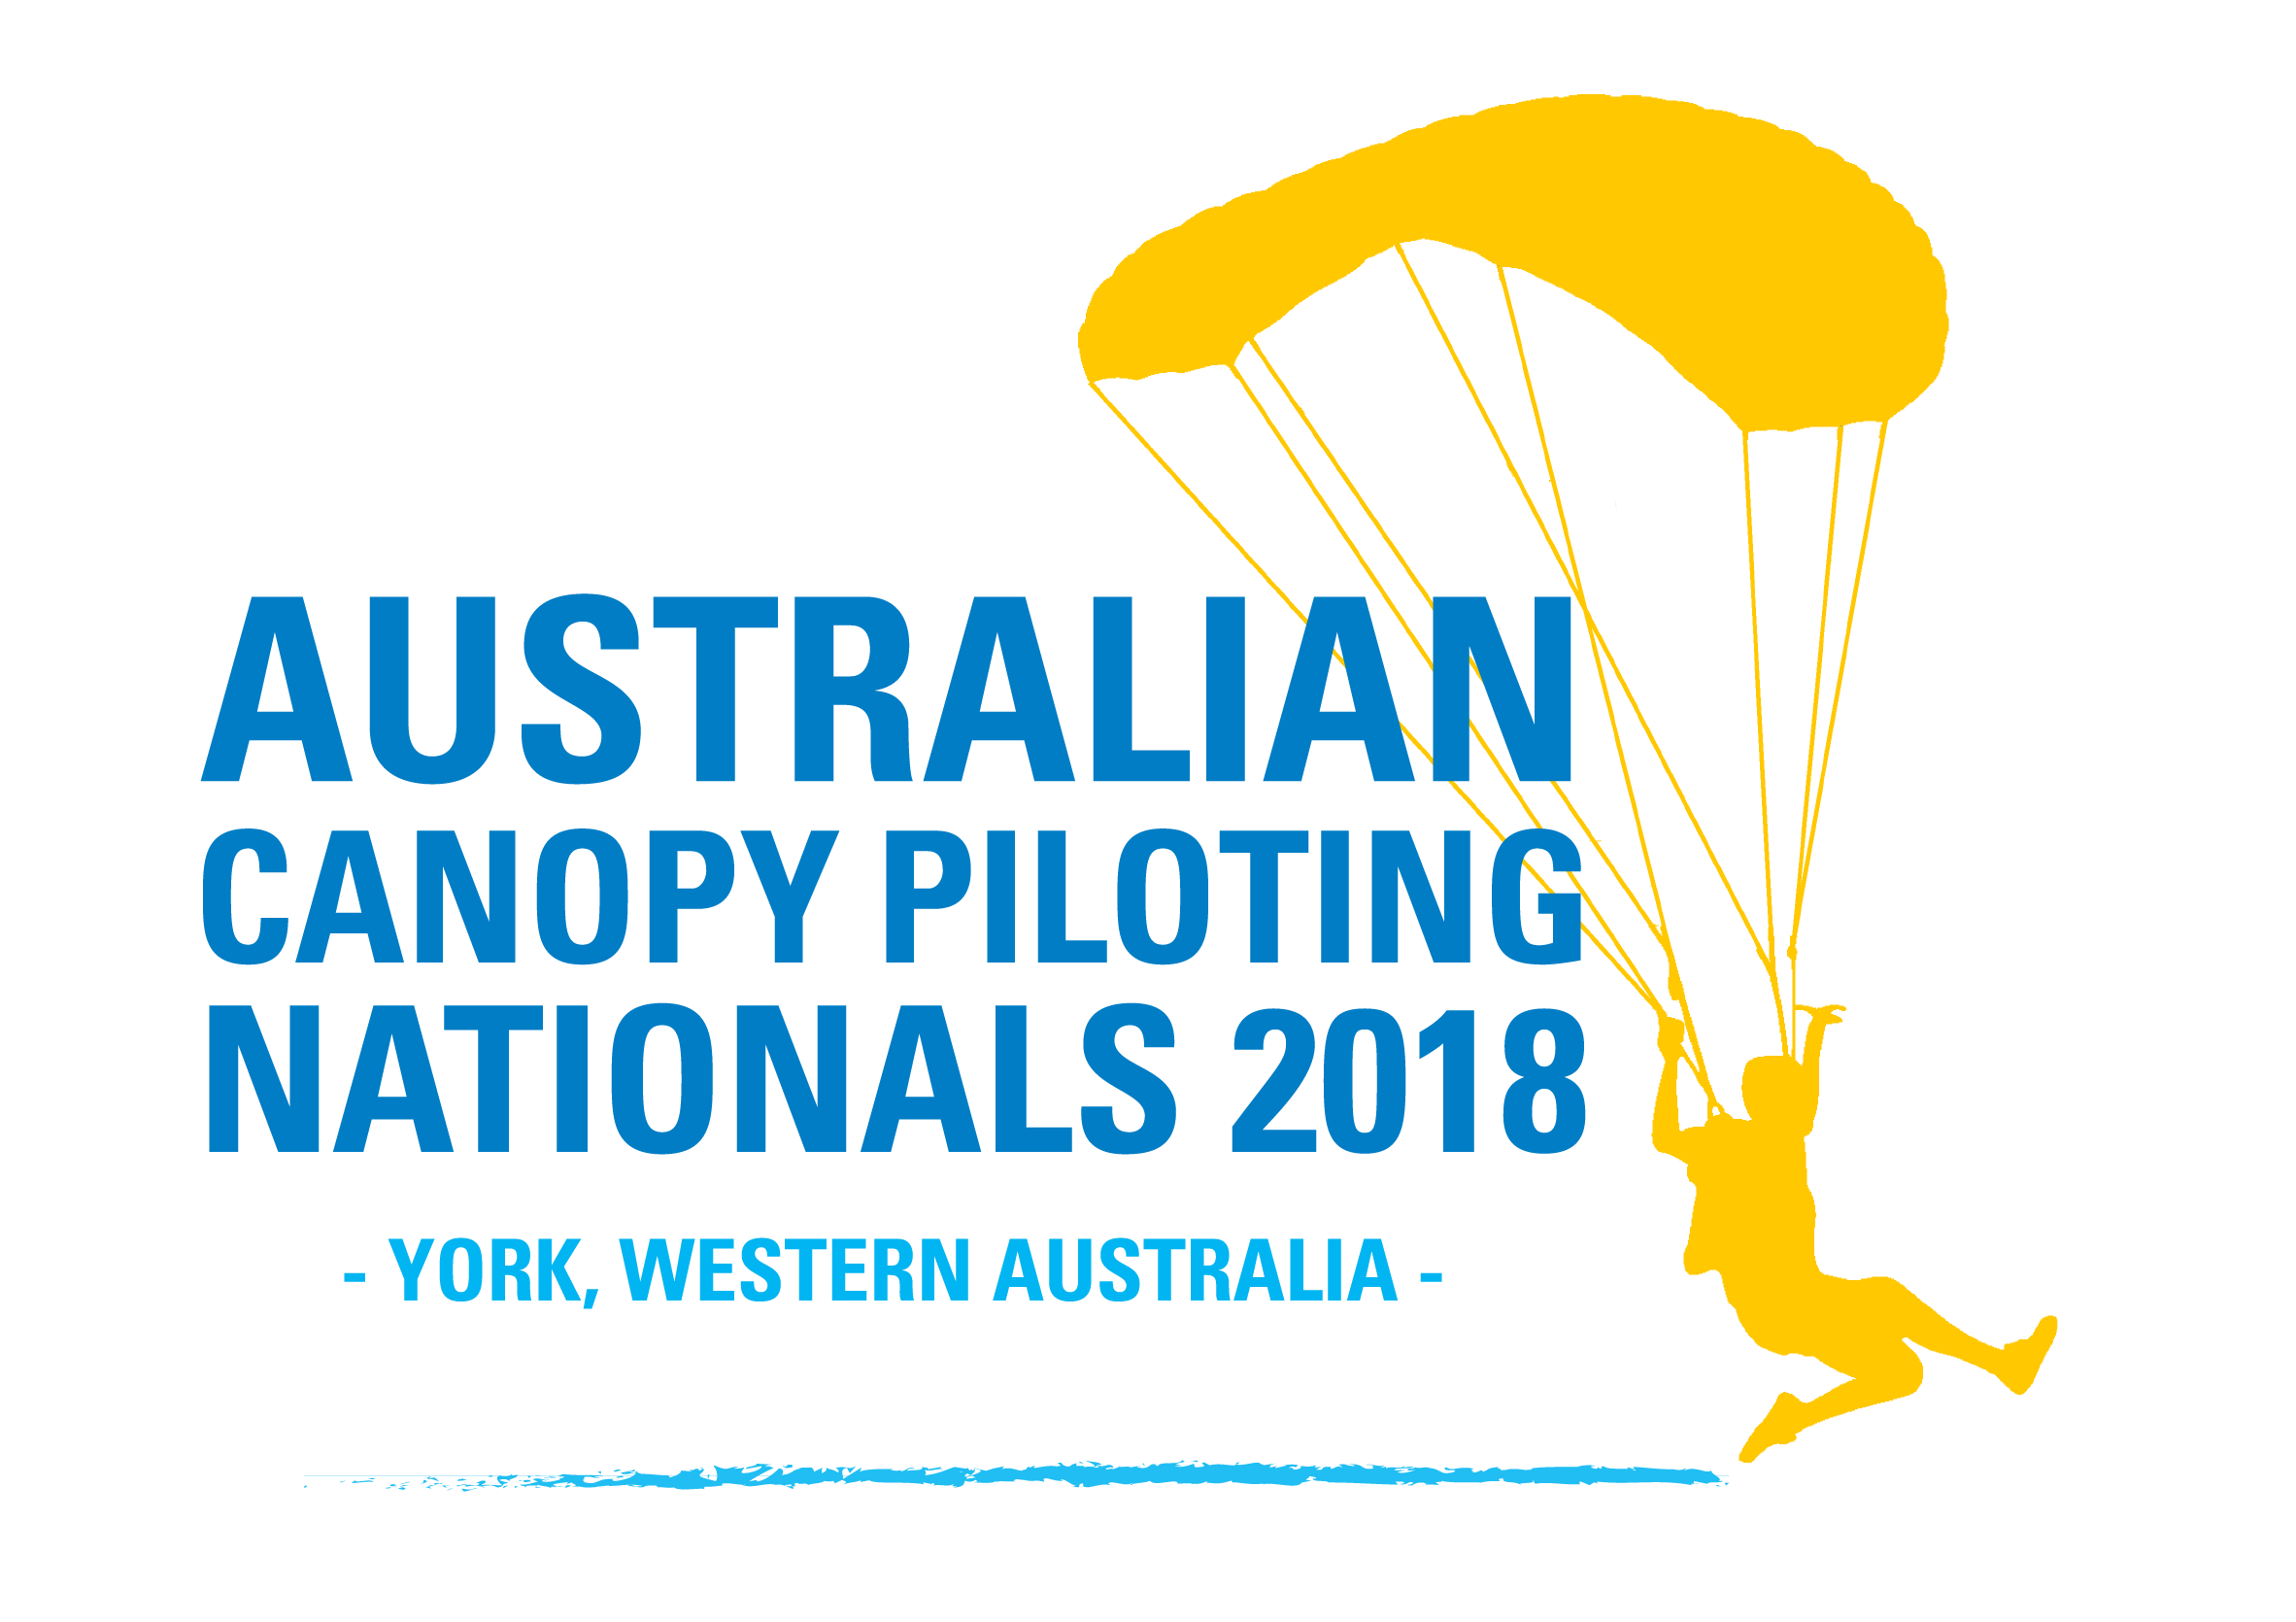 AUSTRALIAN CANOPY PILOTING NATIONALS 2018-01